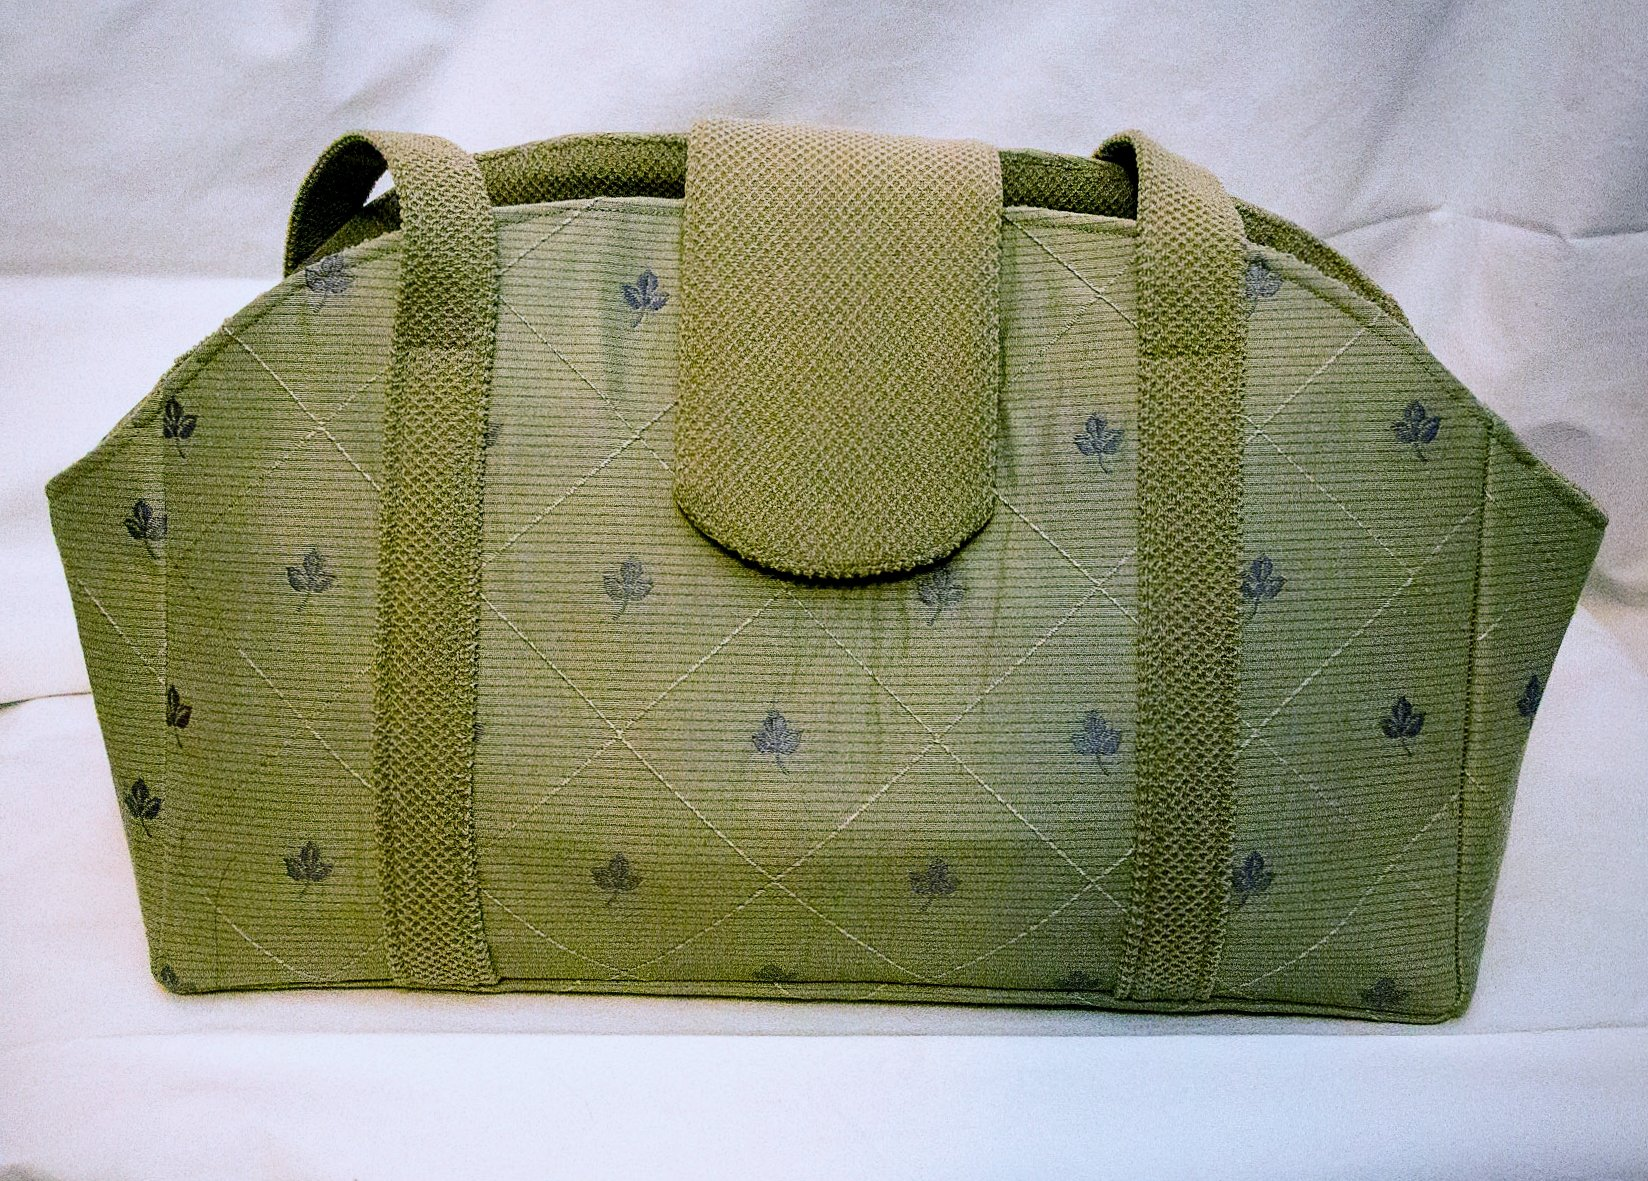 Fall Leaves and Pale Green Pet Purse Carrier by Creatures CoversTM (Image #2)